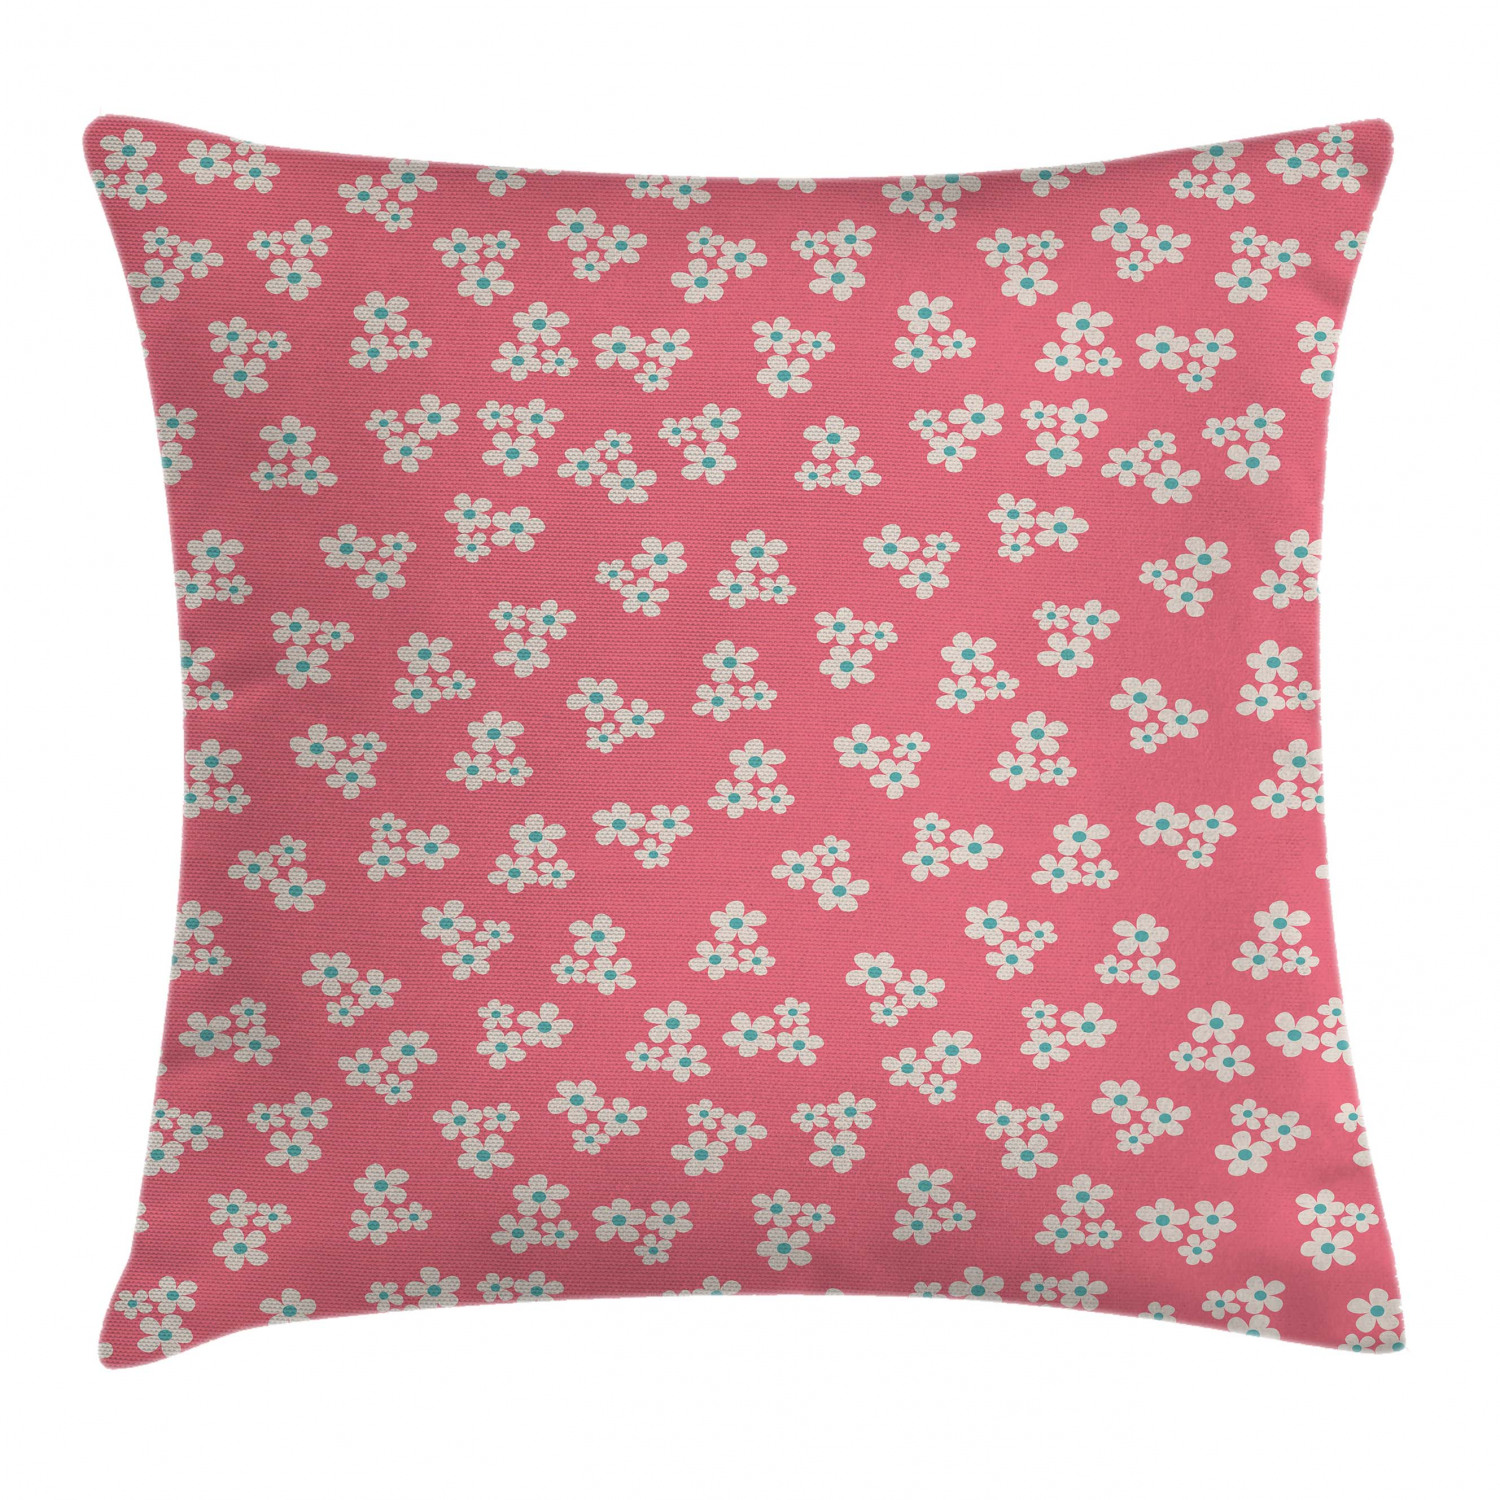 Country Home Throw Pillow Cushion Cover Cute Little Daisies Bouquets Girls Bedroom Decor Freshness Pink Backdrop Decorative Square Accent Pillow Case 16 X 16 Inches Teal Pink White By Ambesonne Walmart Com